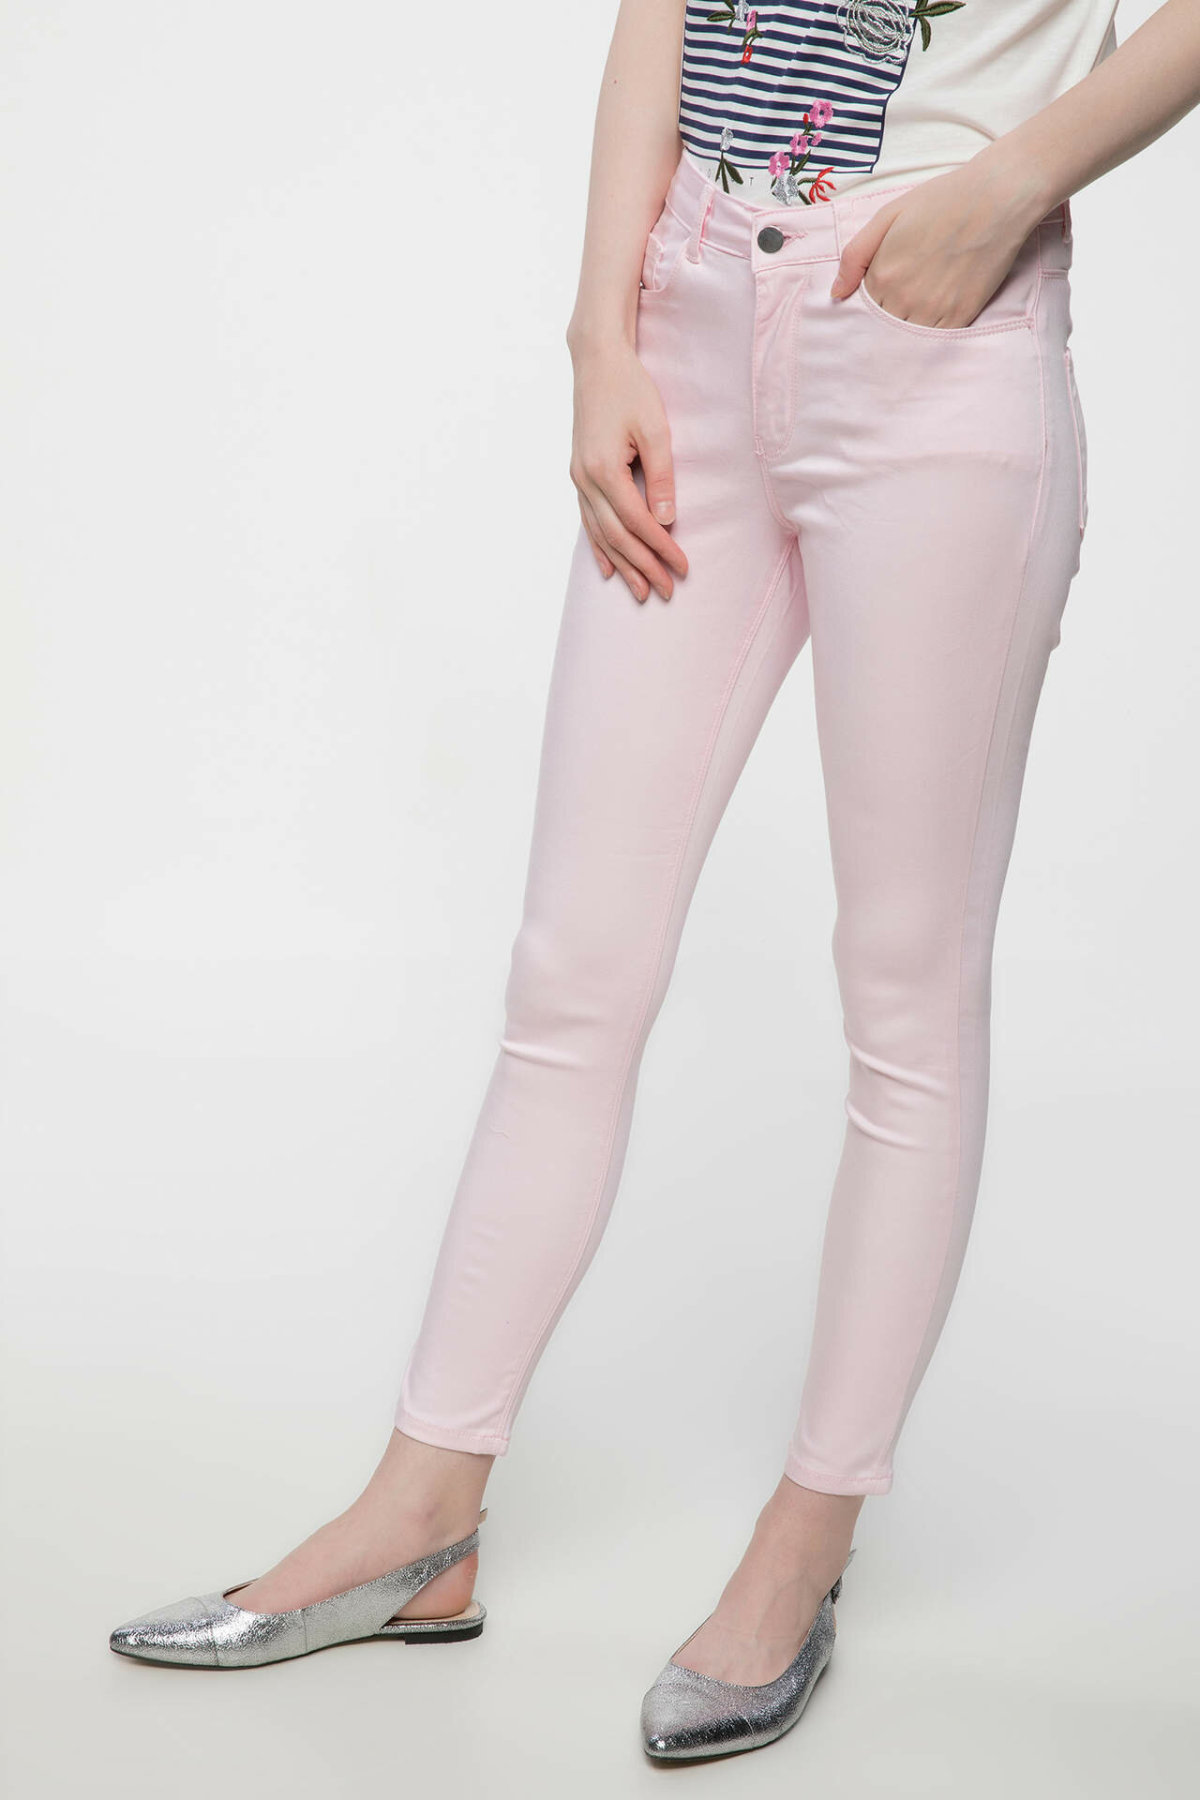 DeFacto Women Pink Color Skinny Trousers Women Long Pants Casual Fit Body Slim Bottoms Female Pant -J1722AZ18SM